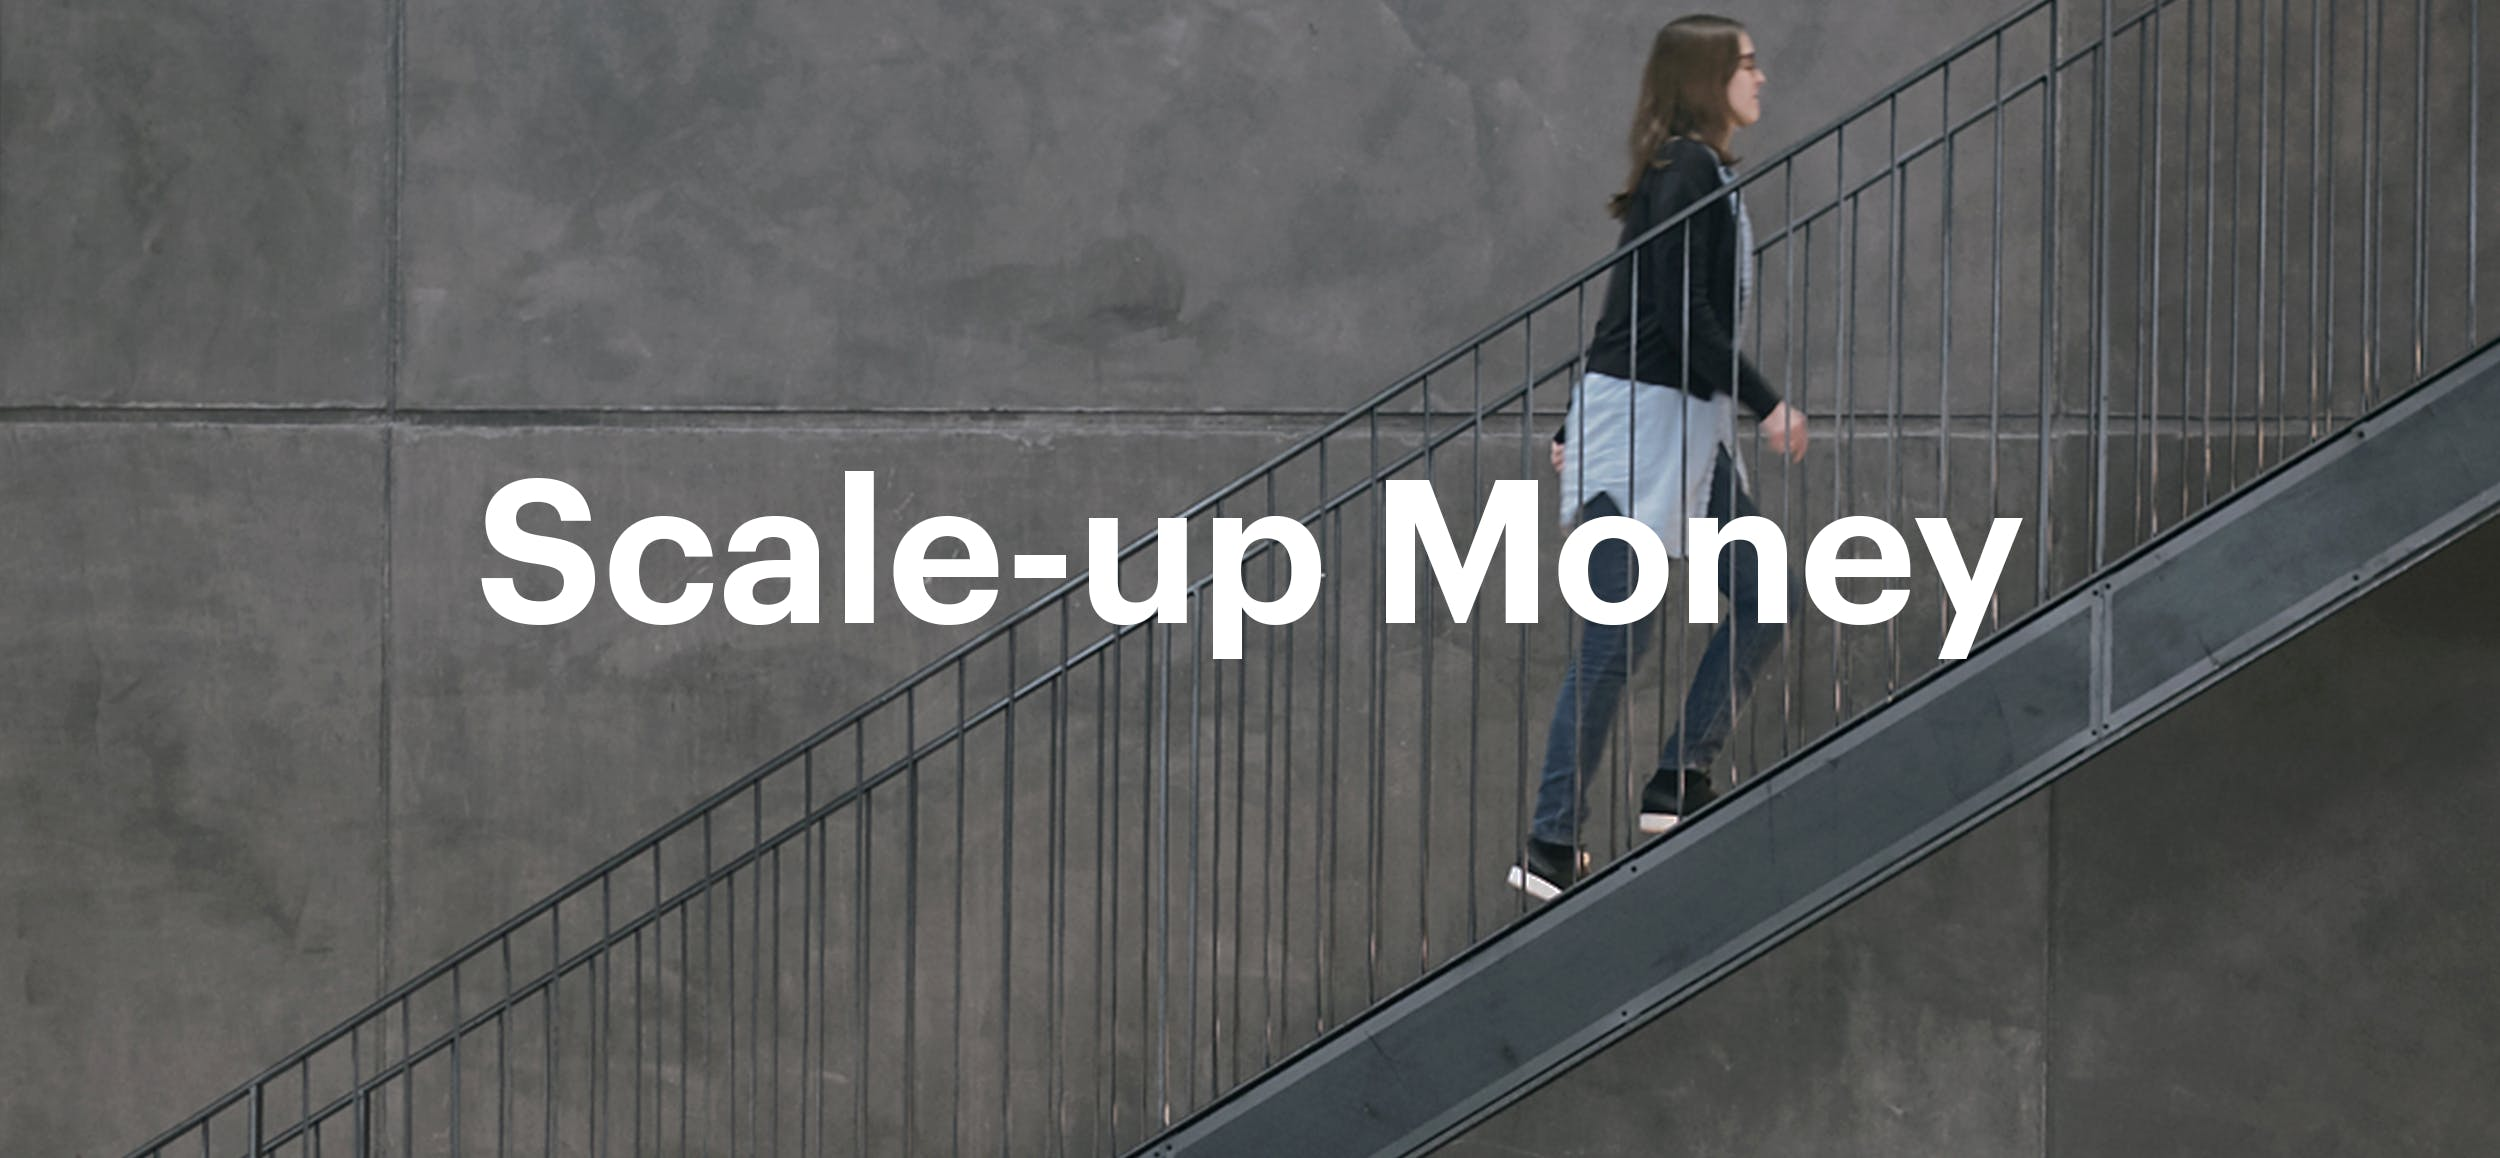 Pier47 Sessions: Scale-up Money